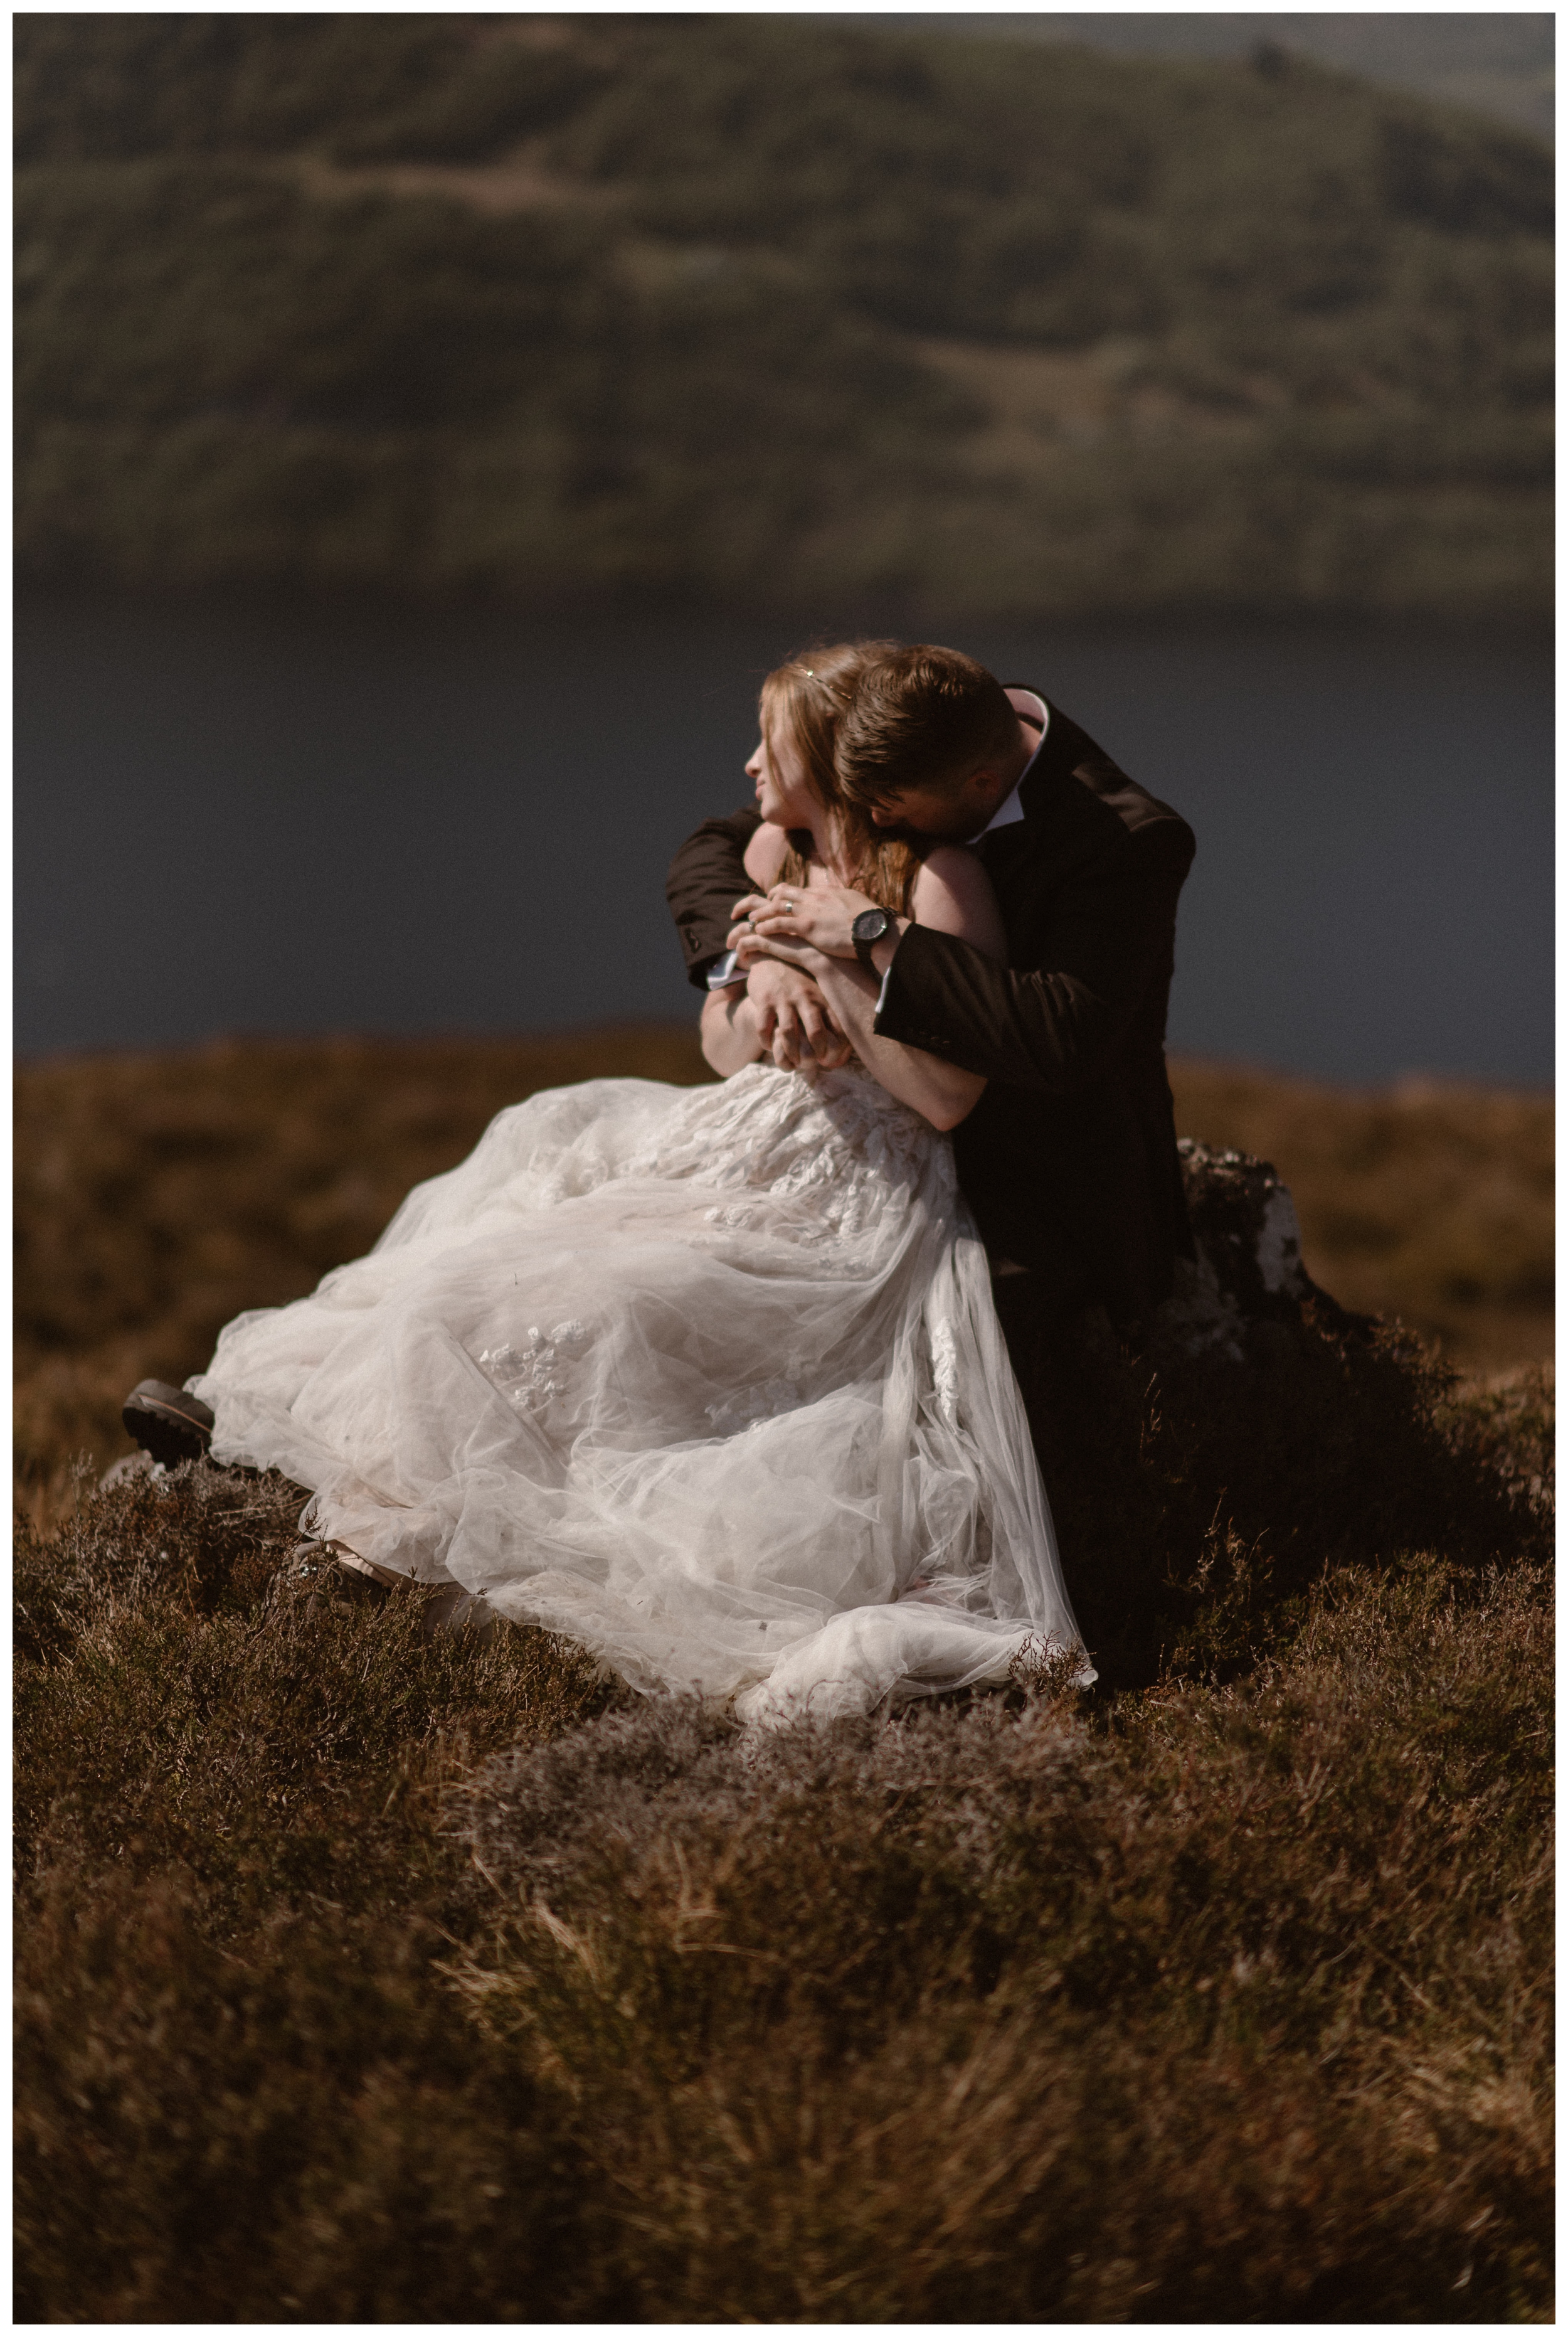 We helped Elissa and Daniel plan their destination elopement in the Scottish Highlands, even though they had never been. They embrace on a rock on the shores of Loch Ness in Scotland following their ceremony. Photo by Maddie Mae, Adventure Instead.